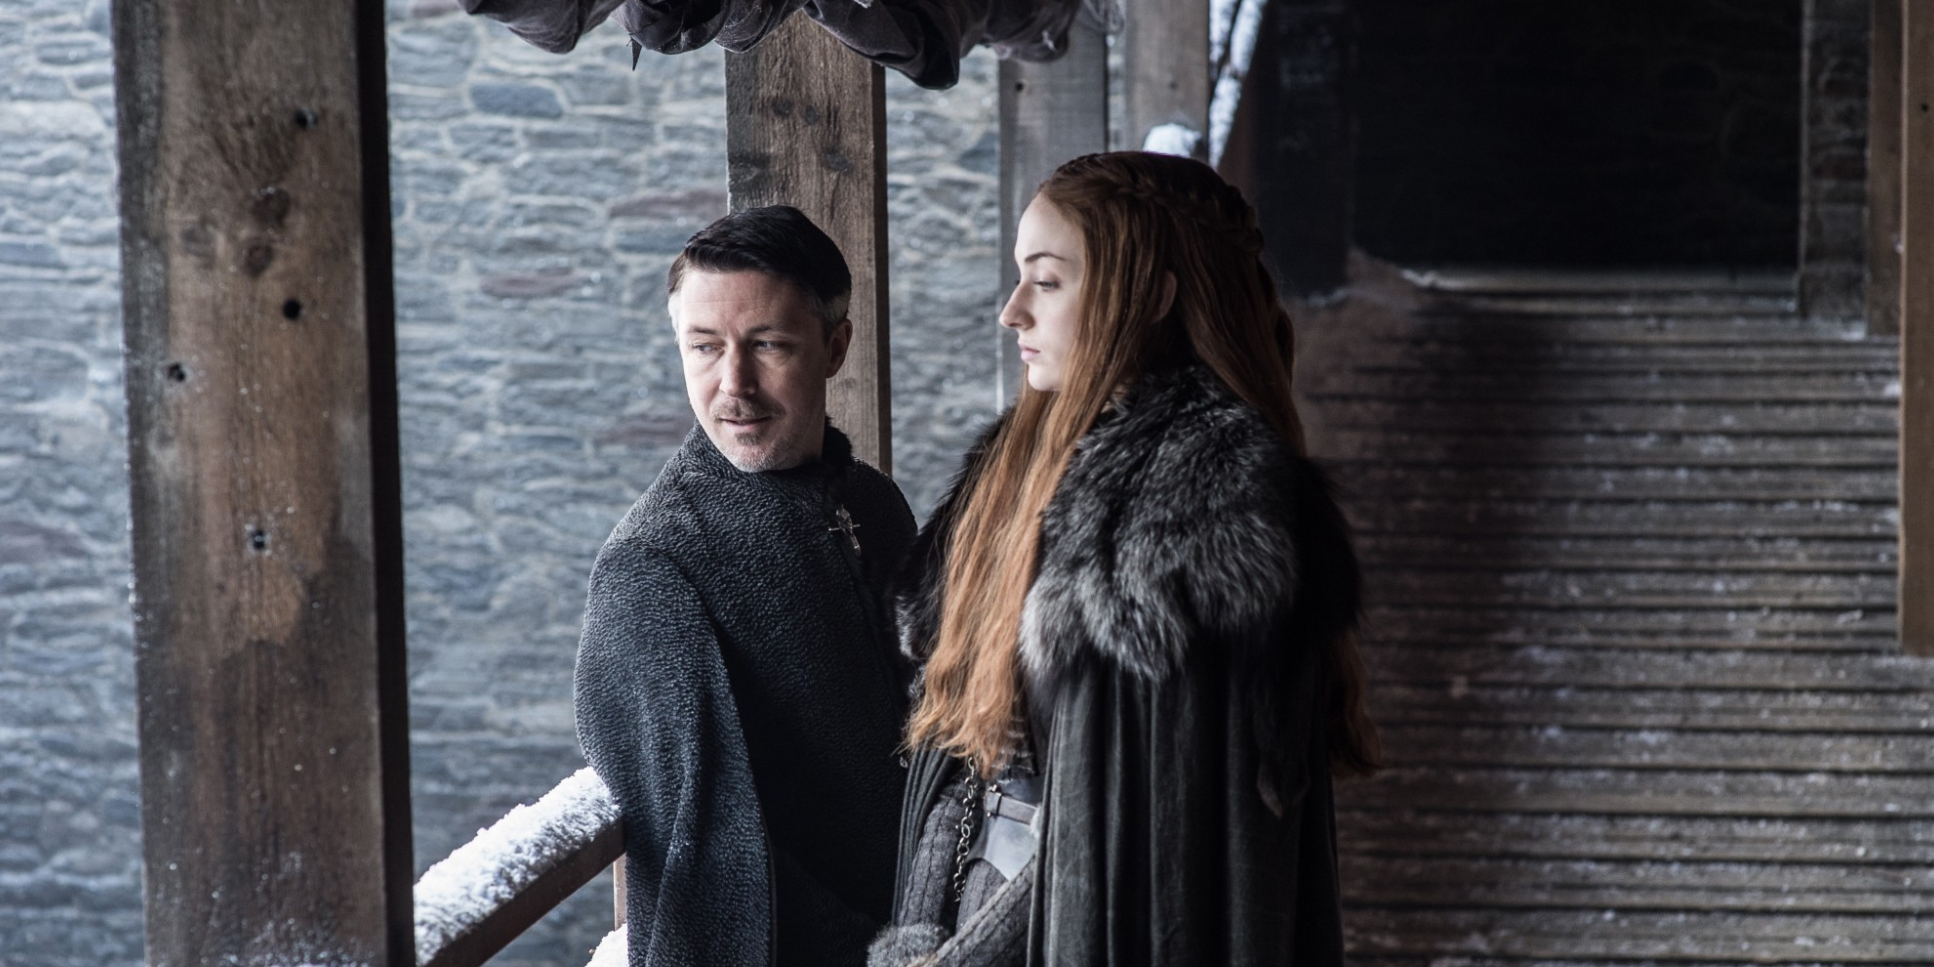 Game of Thrones season 7:  Littlefinger and Sansa